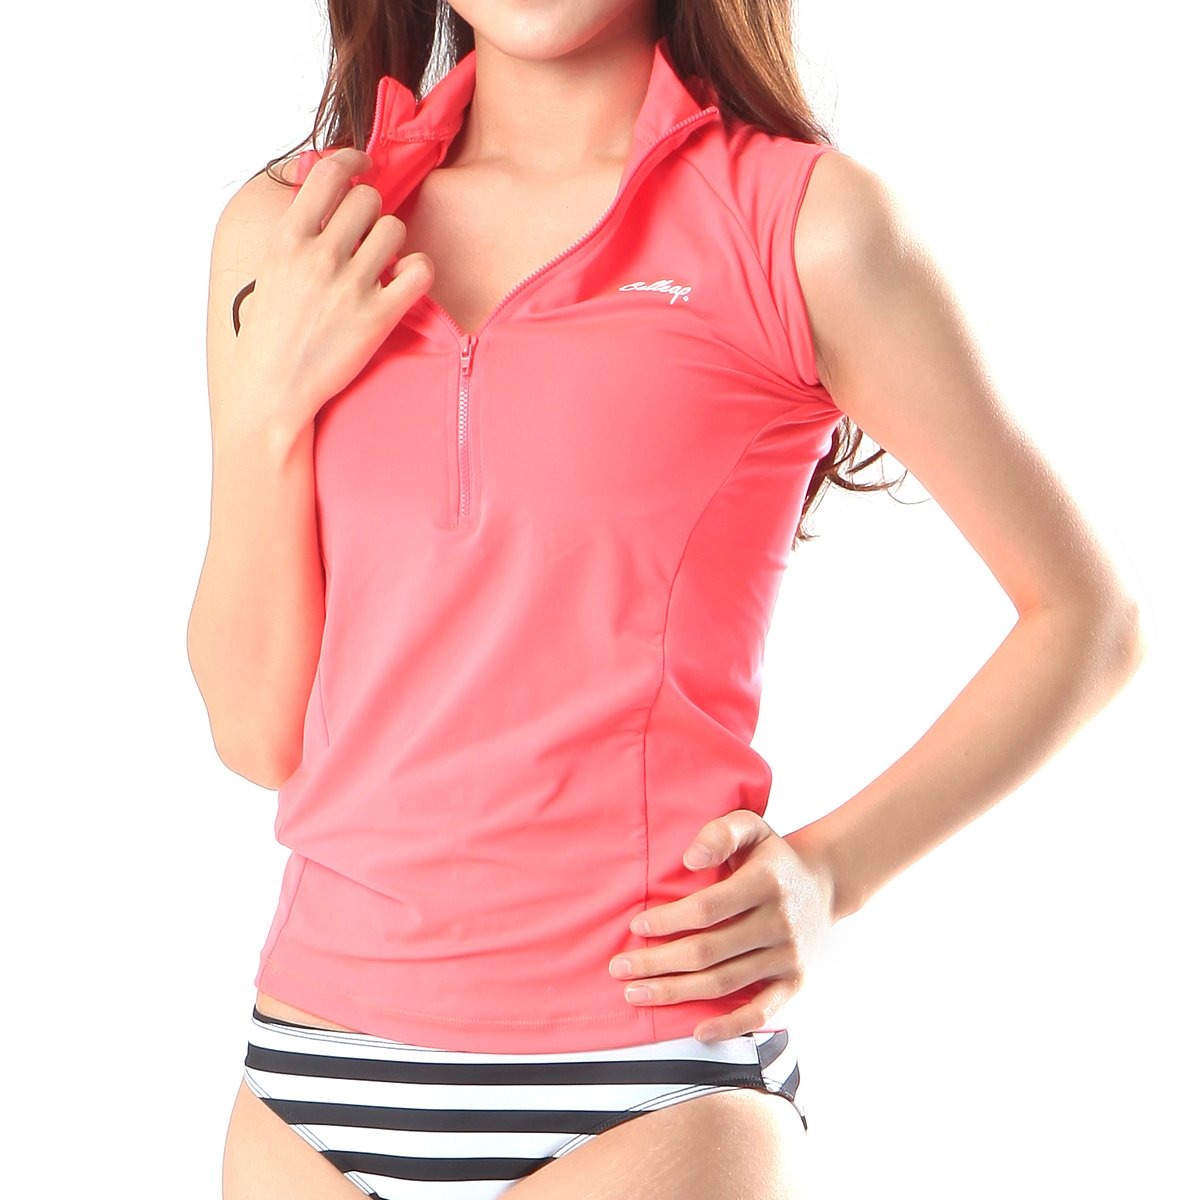 New M0204 Pink Beach Rash Guard Women Zip up Sleeveless Top Swimwear Yoga Fitness Gym (US S - Tag size M)